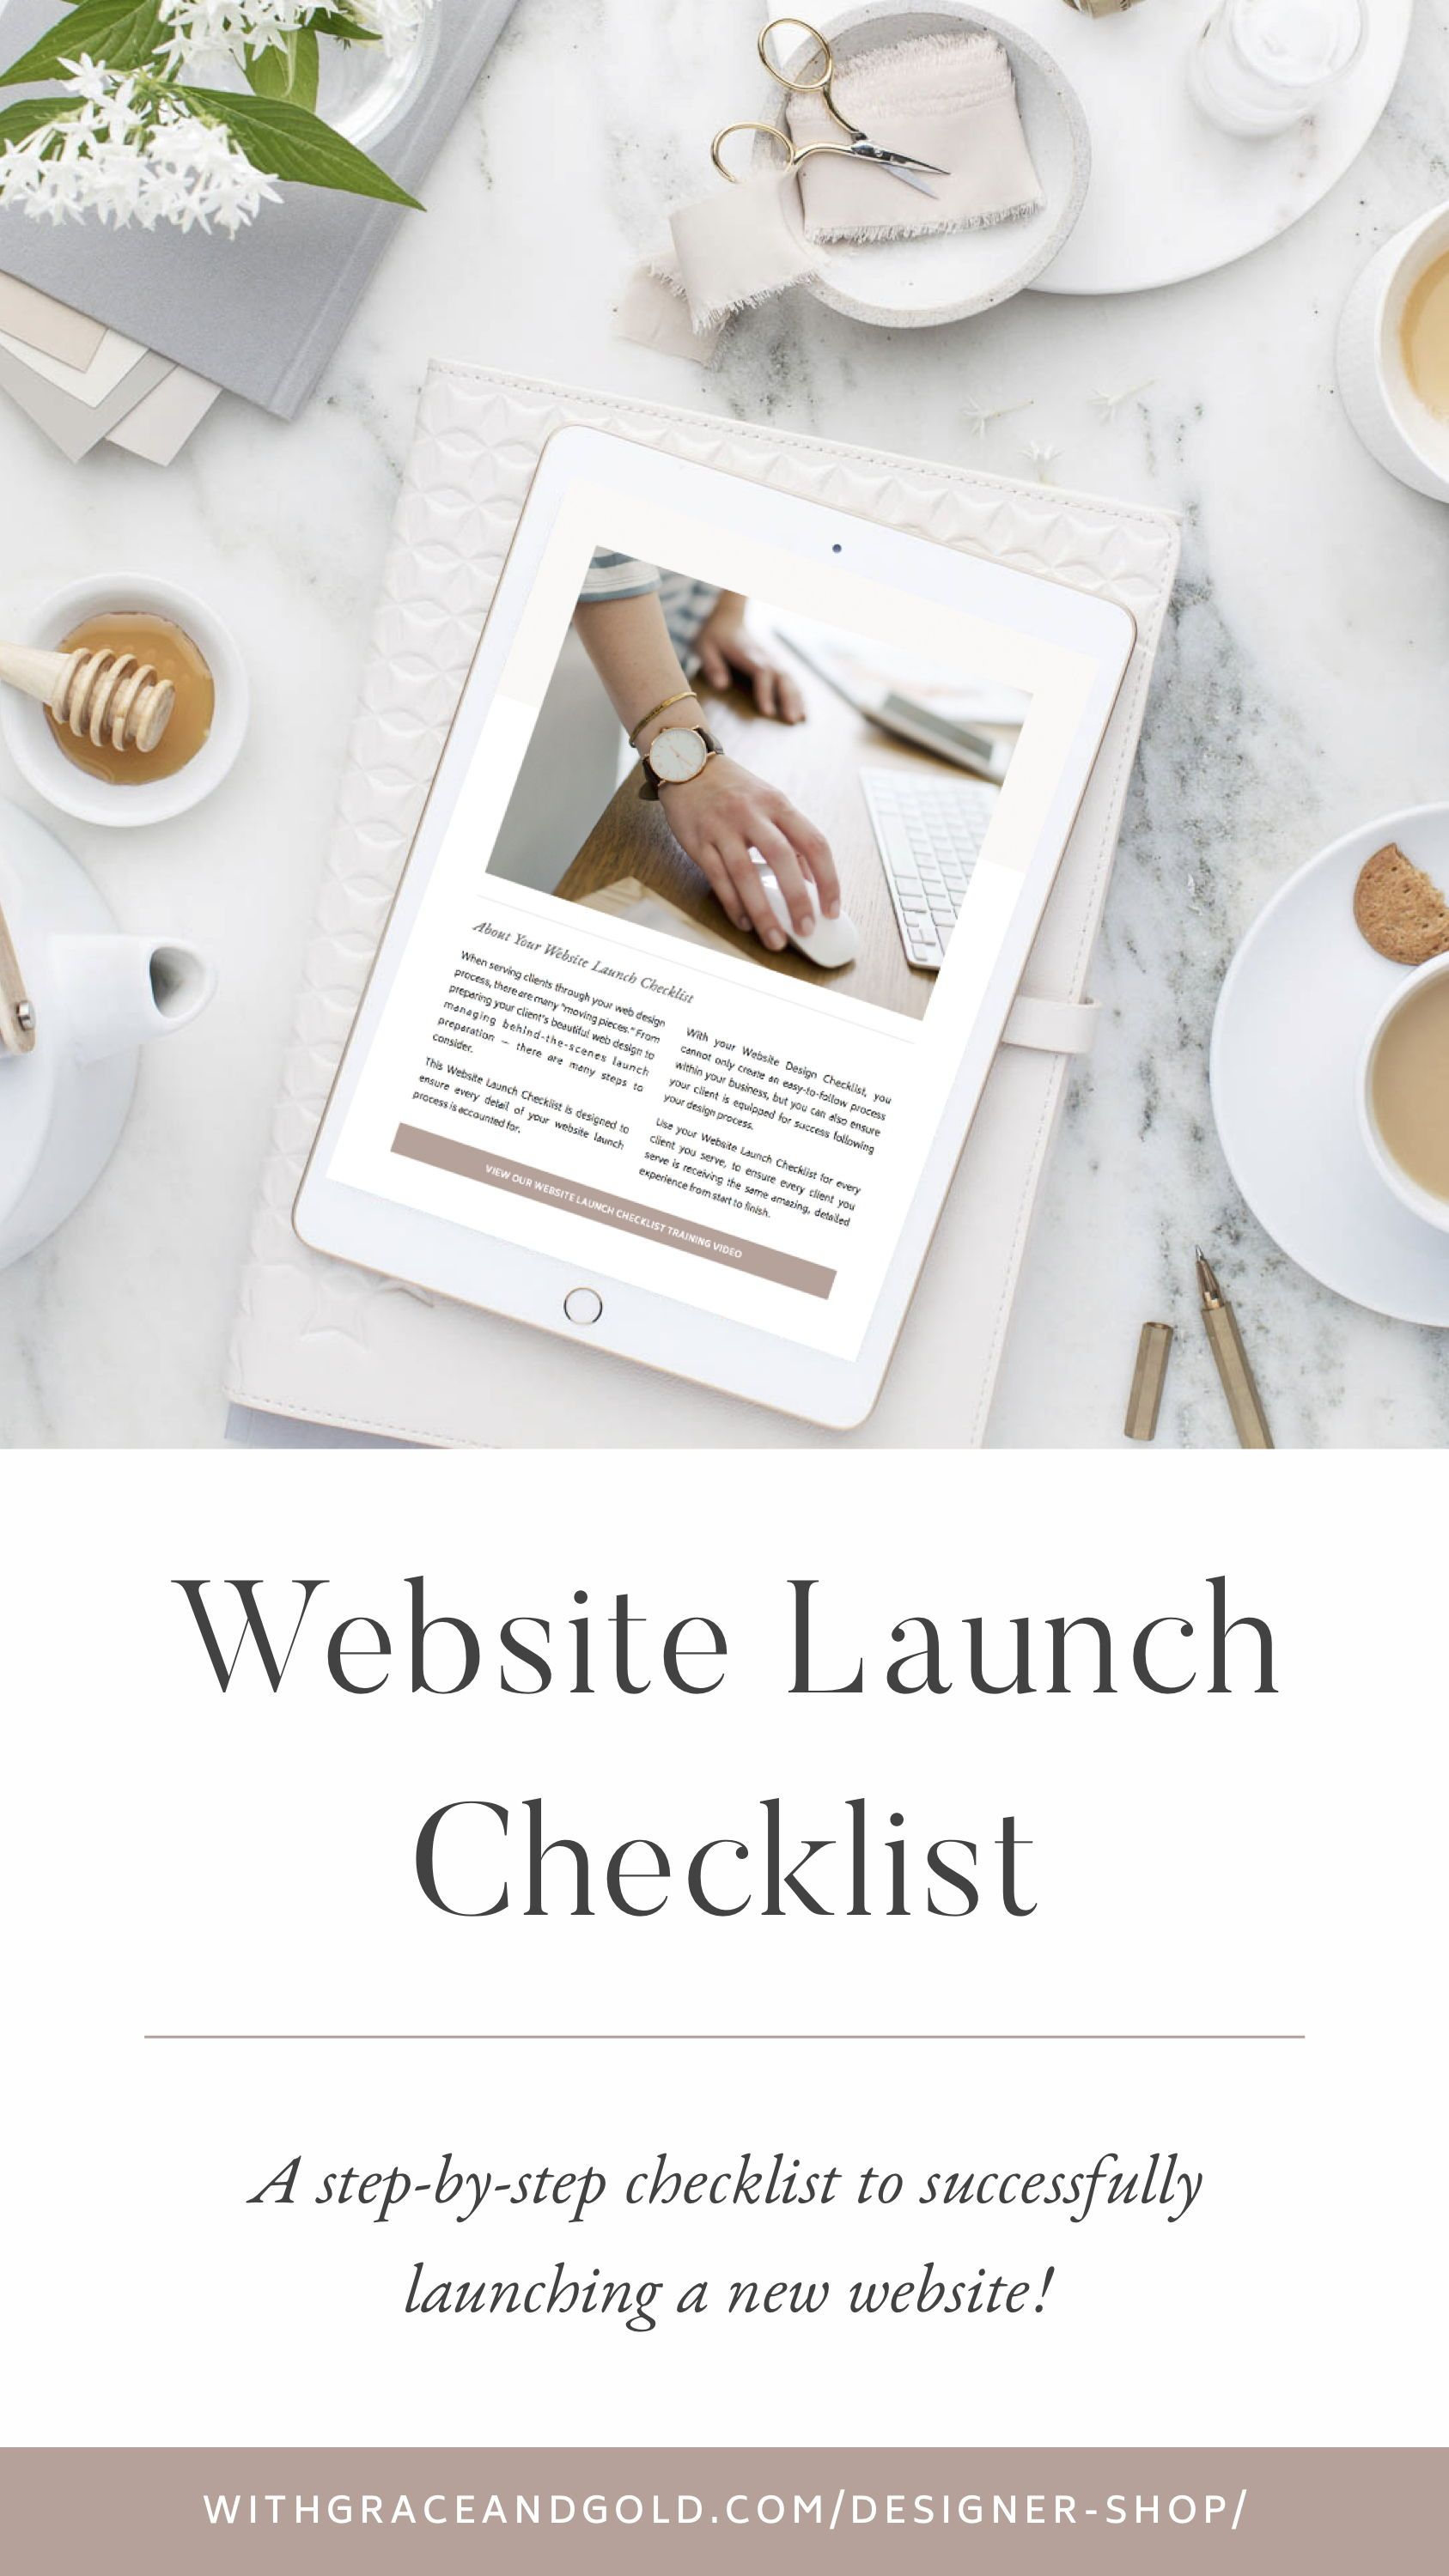 Website Launch Checklist For Web Designers By With Grace And Gold